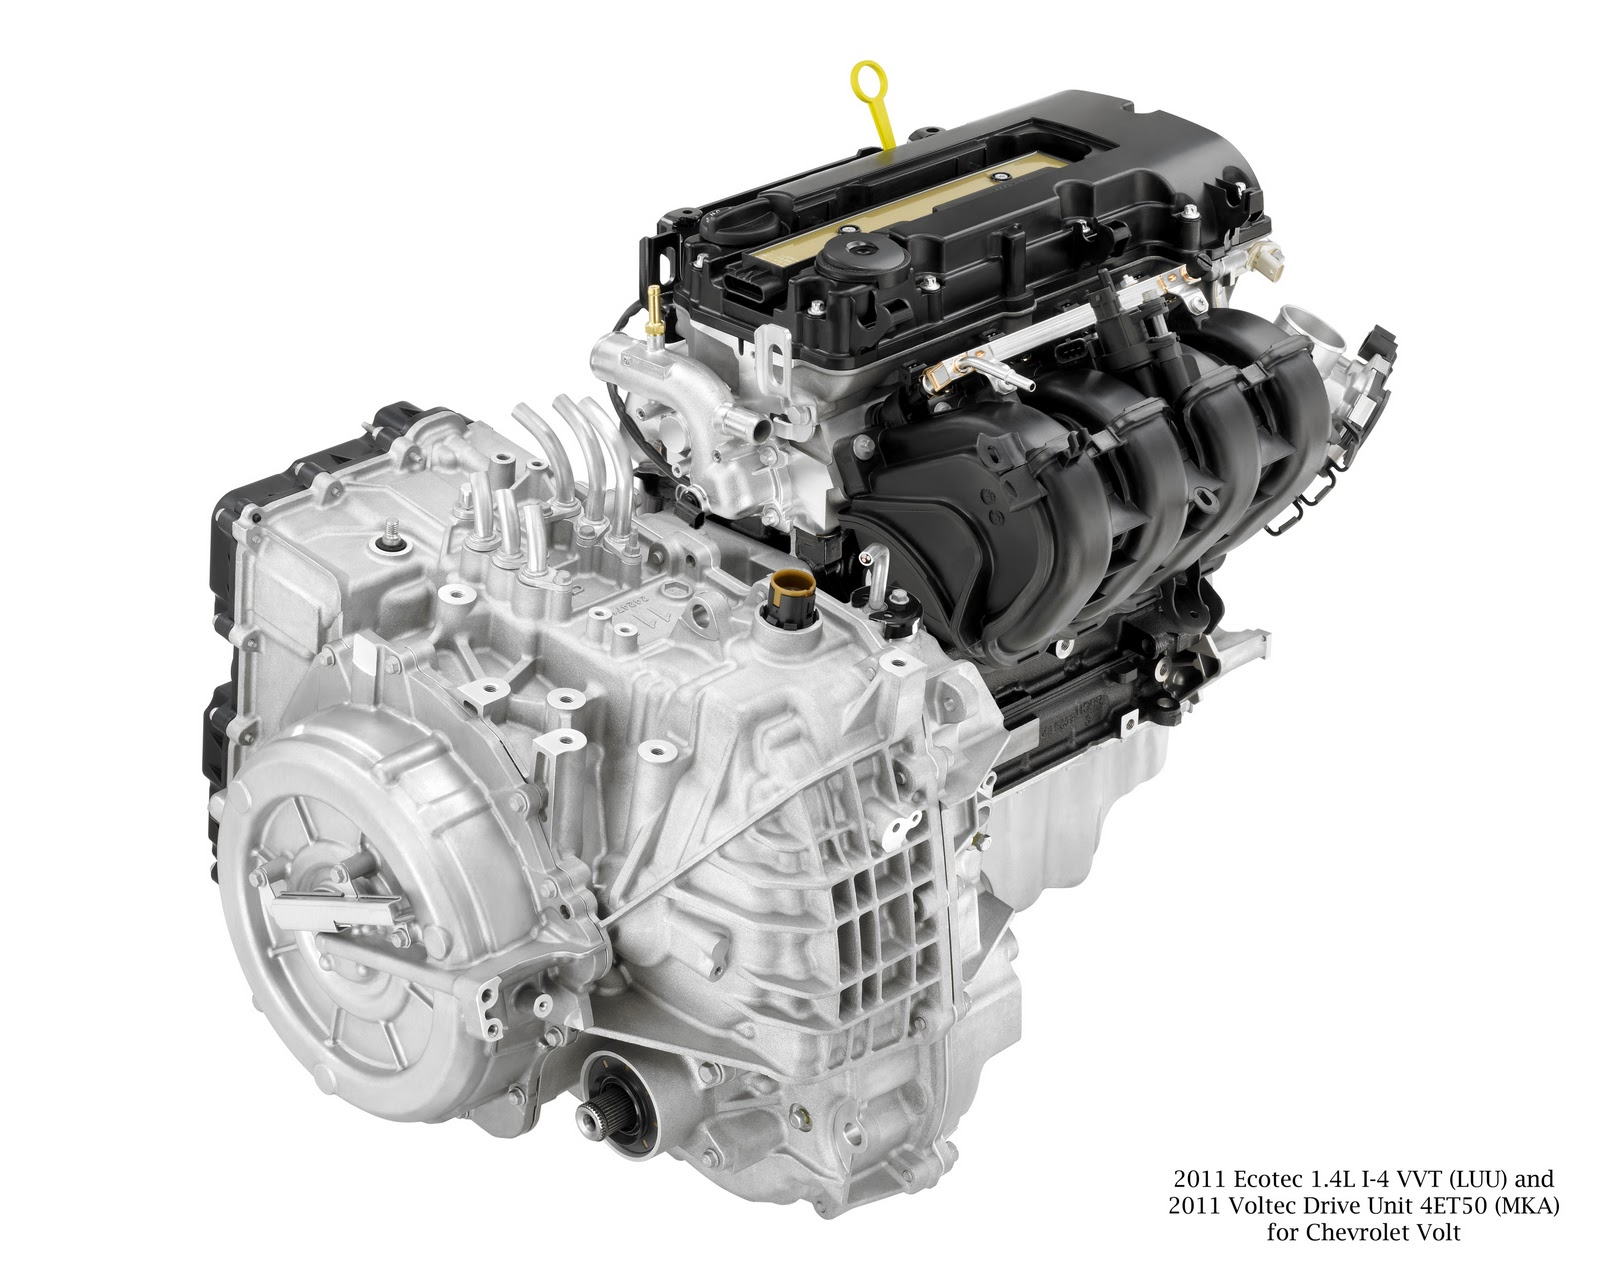 Chevrolet Volt Electric Drive Engineered For Efficiency